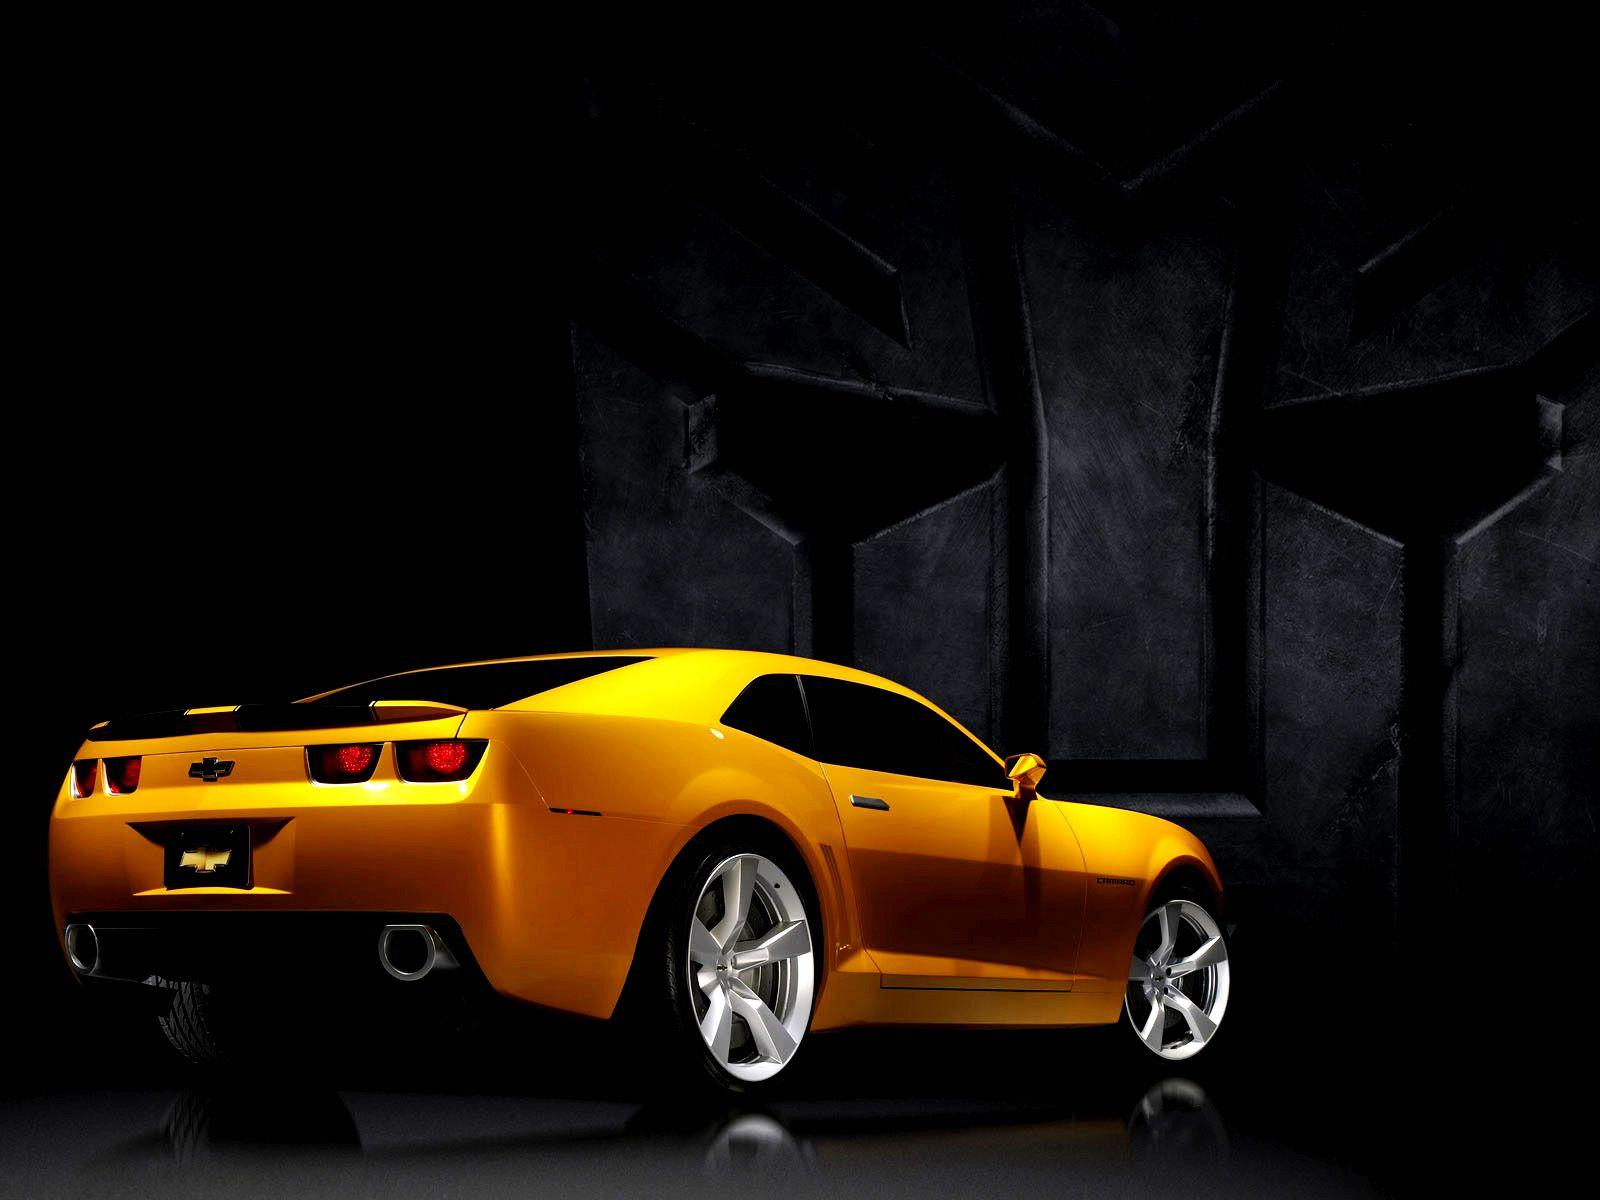 Transformers Bumblebee Car Wallpapers